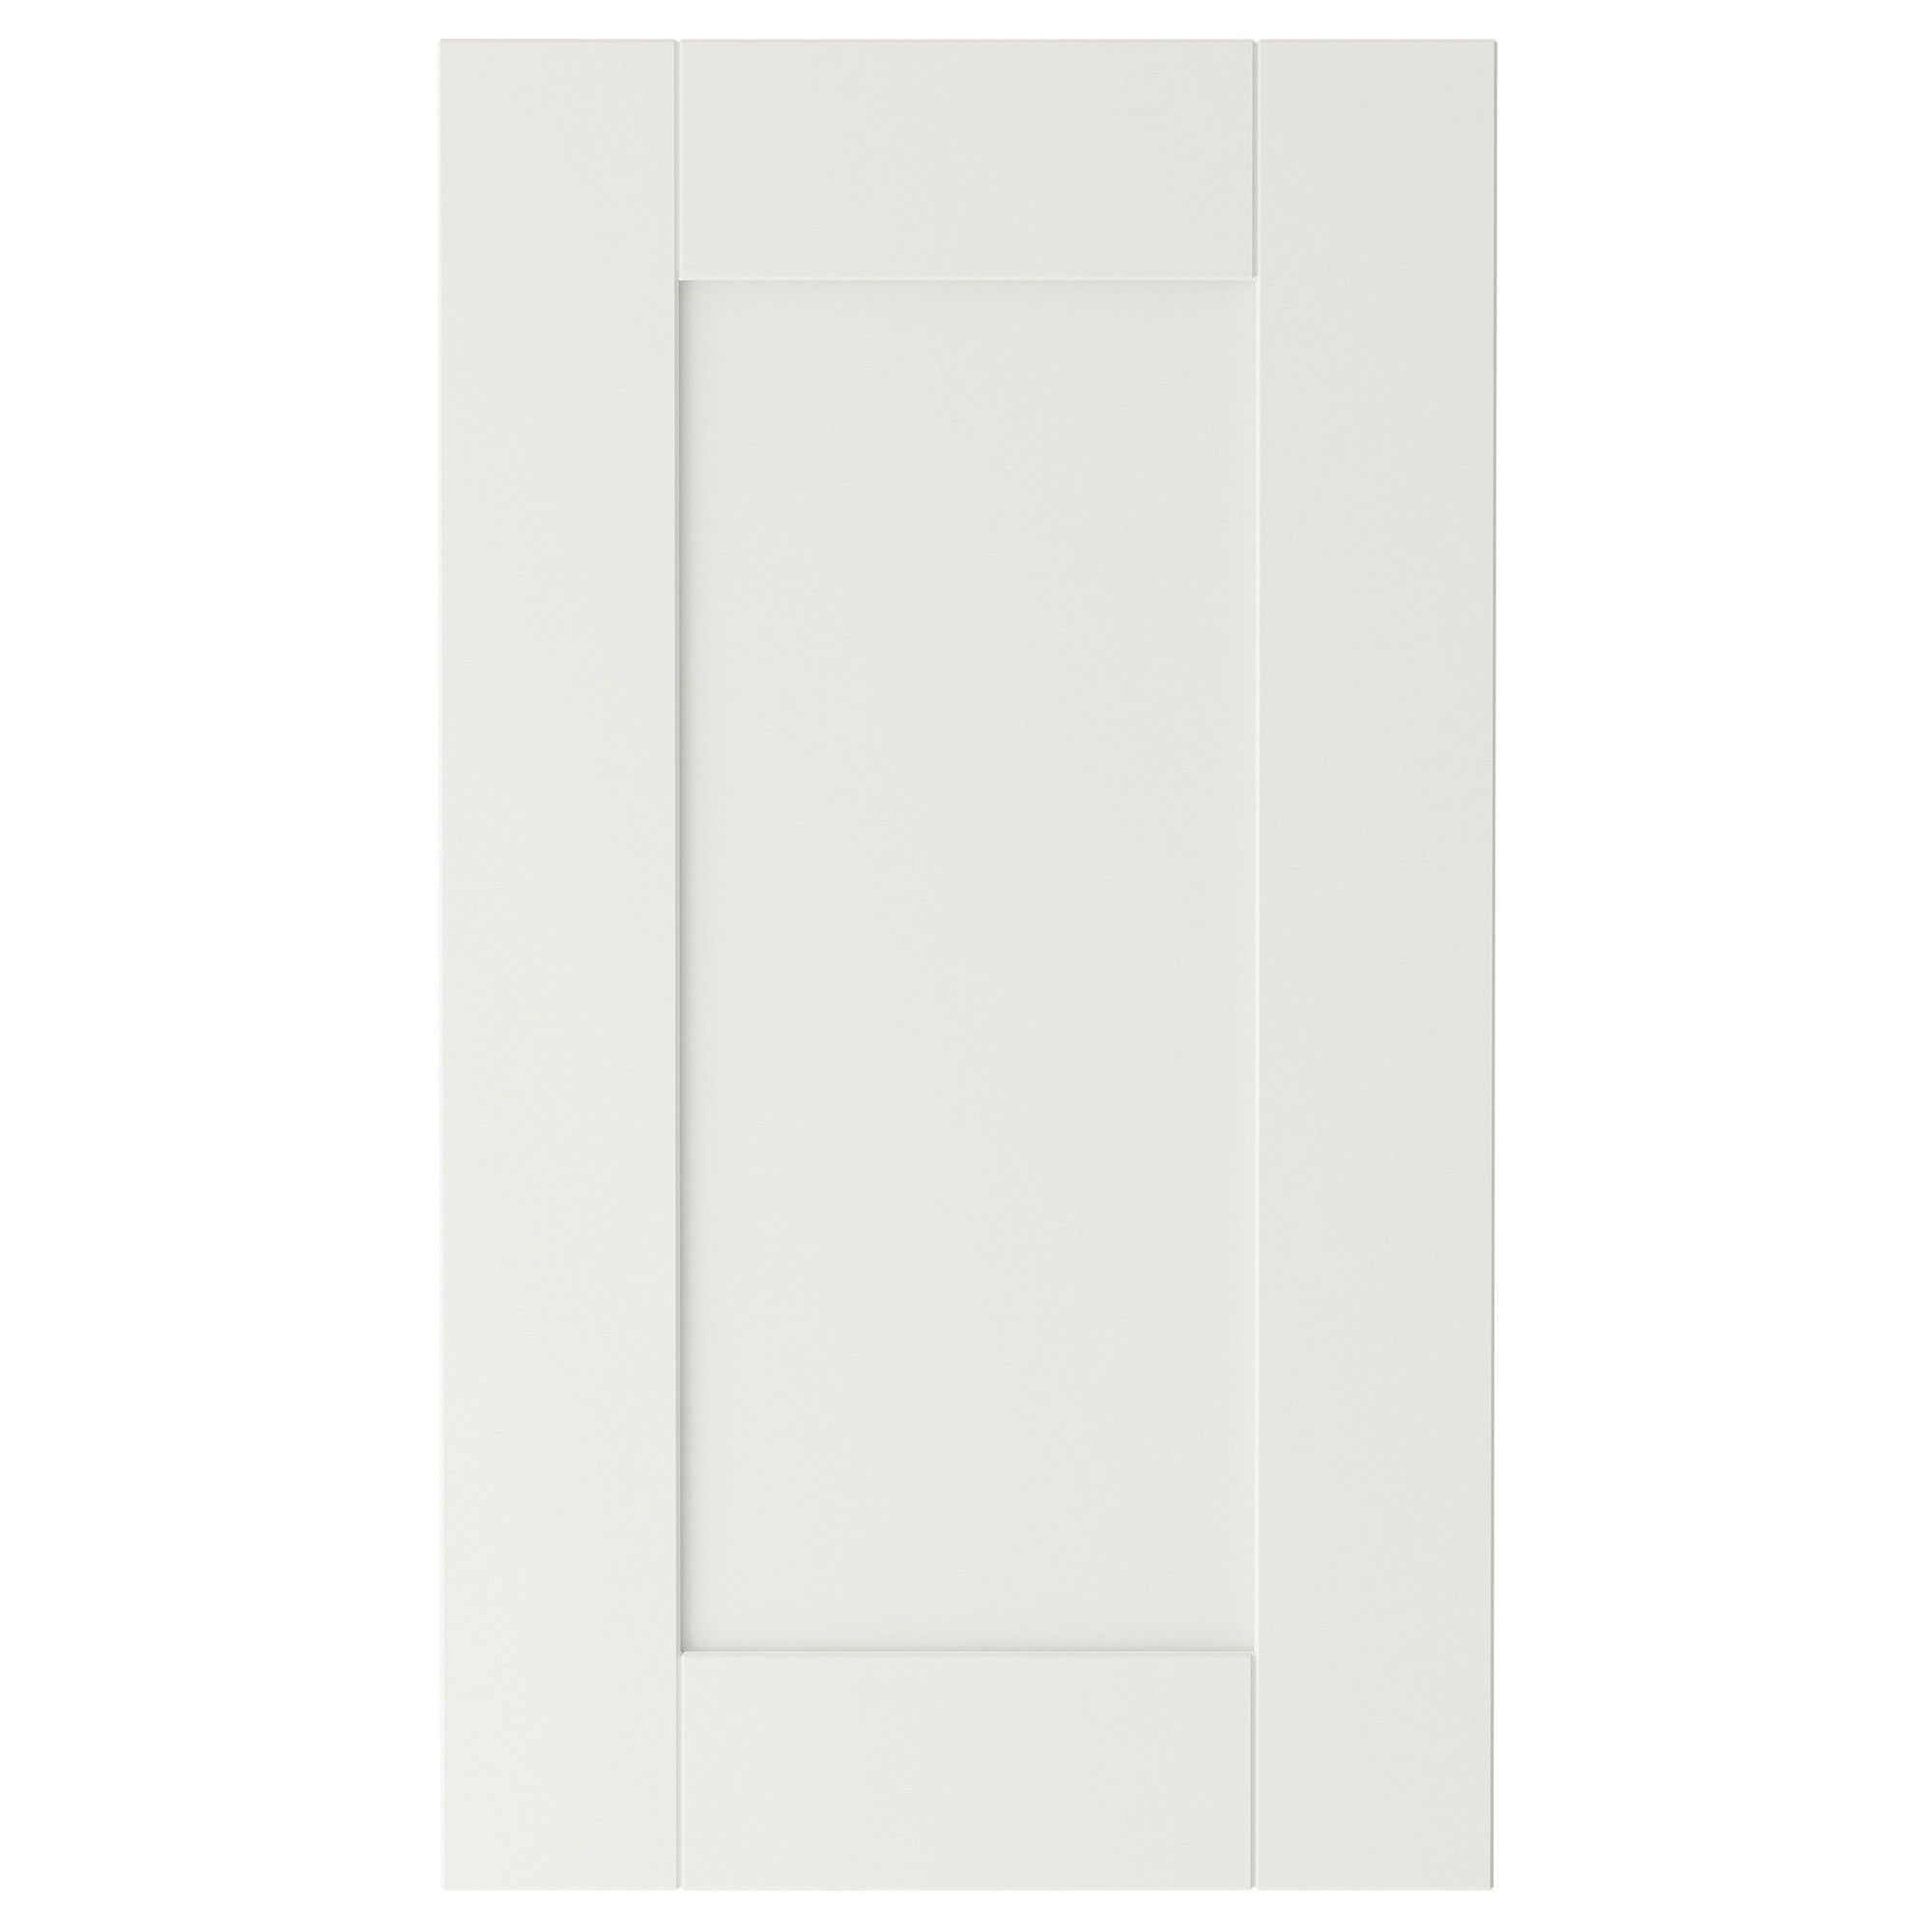 Cabinet door from ikea del 2 p door corner base cabinet - Ikea corner cabinet door installation ...